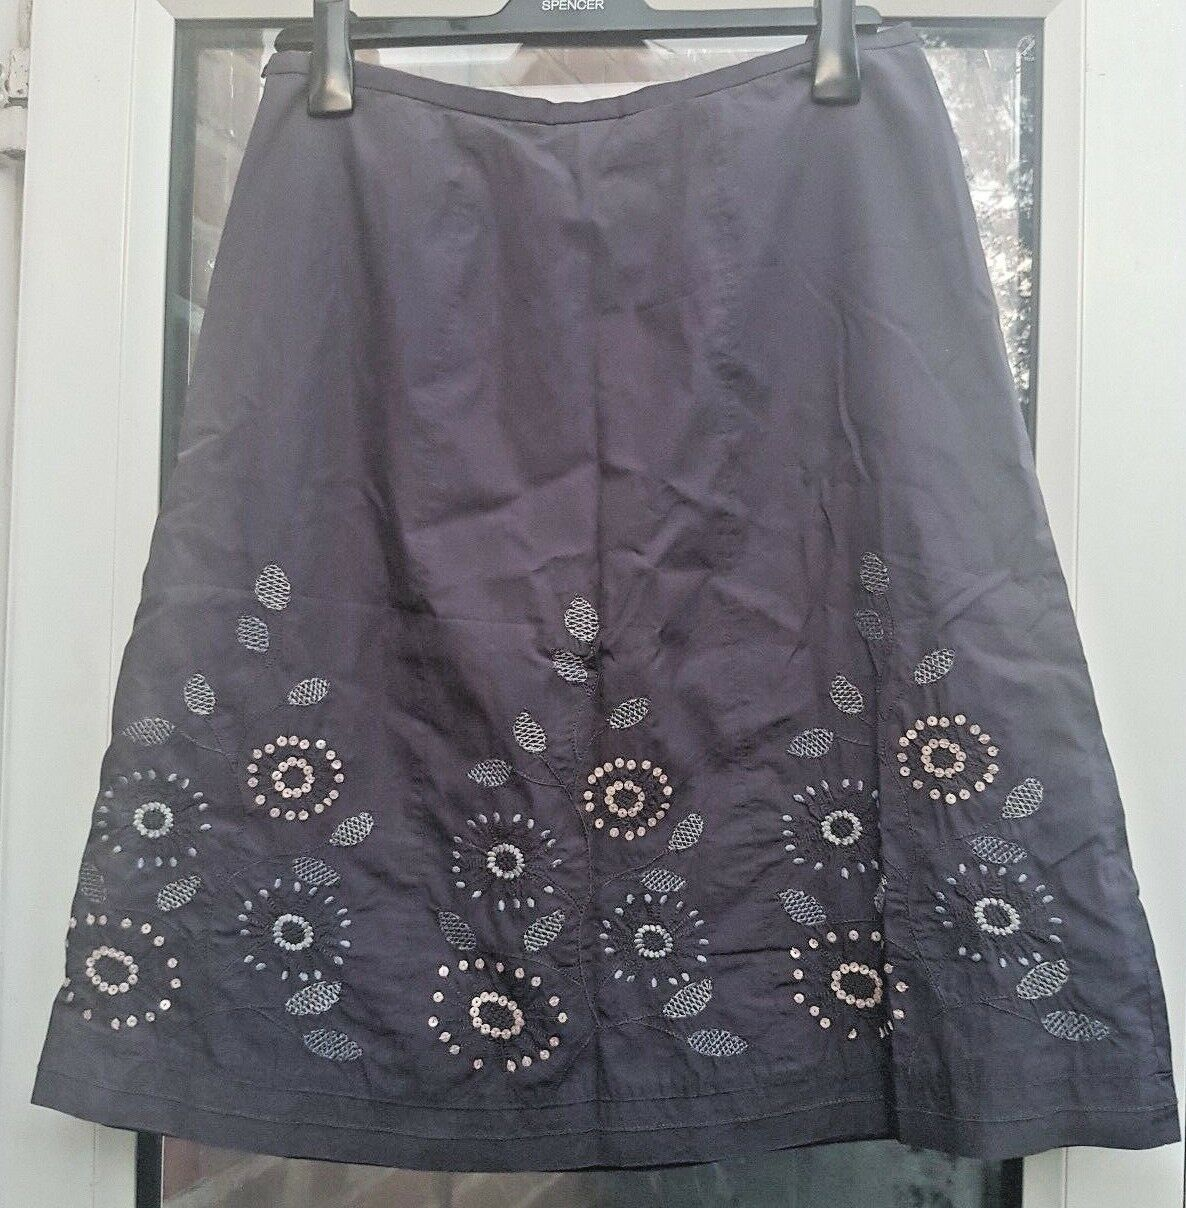 NEXT Ladies Grey Floral Flared Fully Lined Embroidered Sequins Skirt Size 14